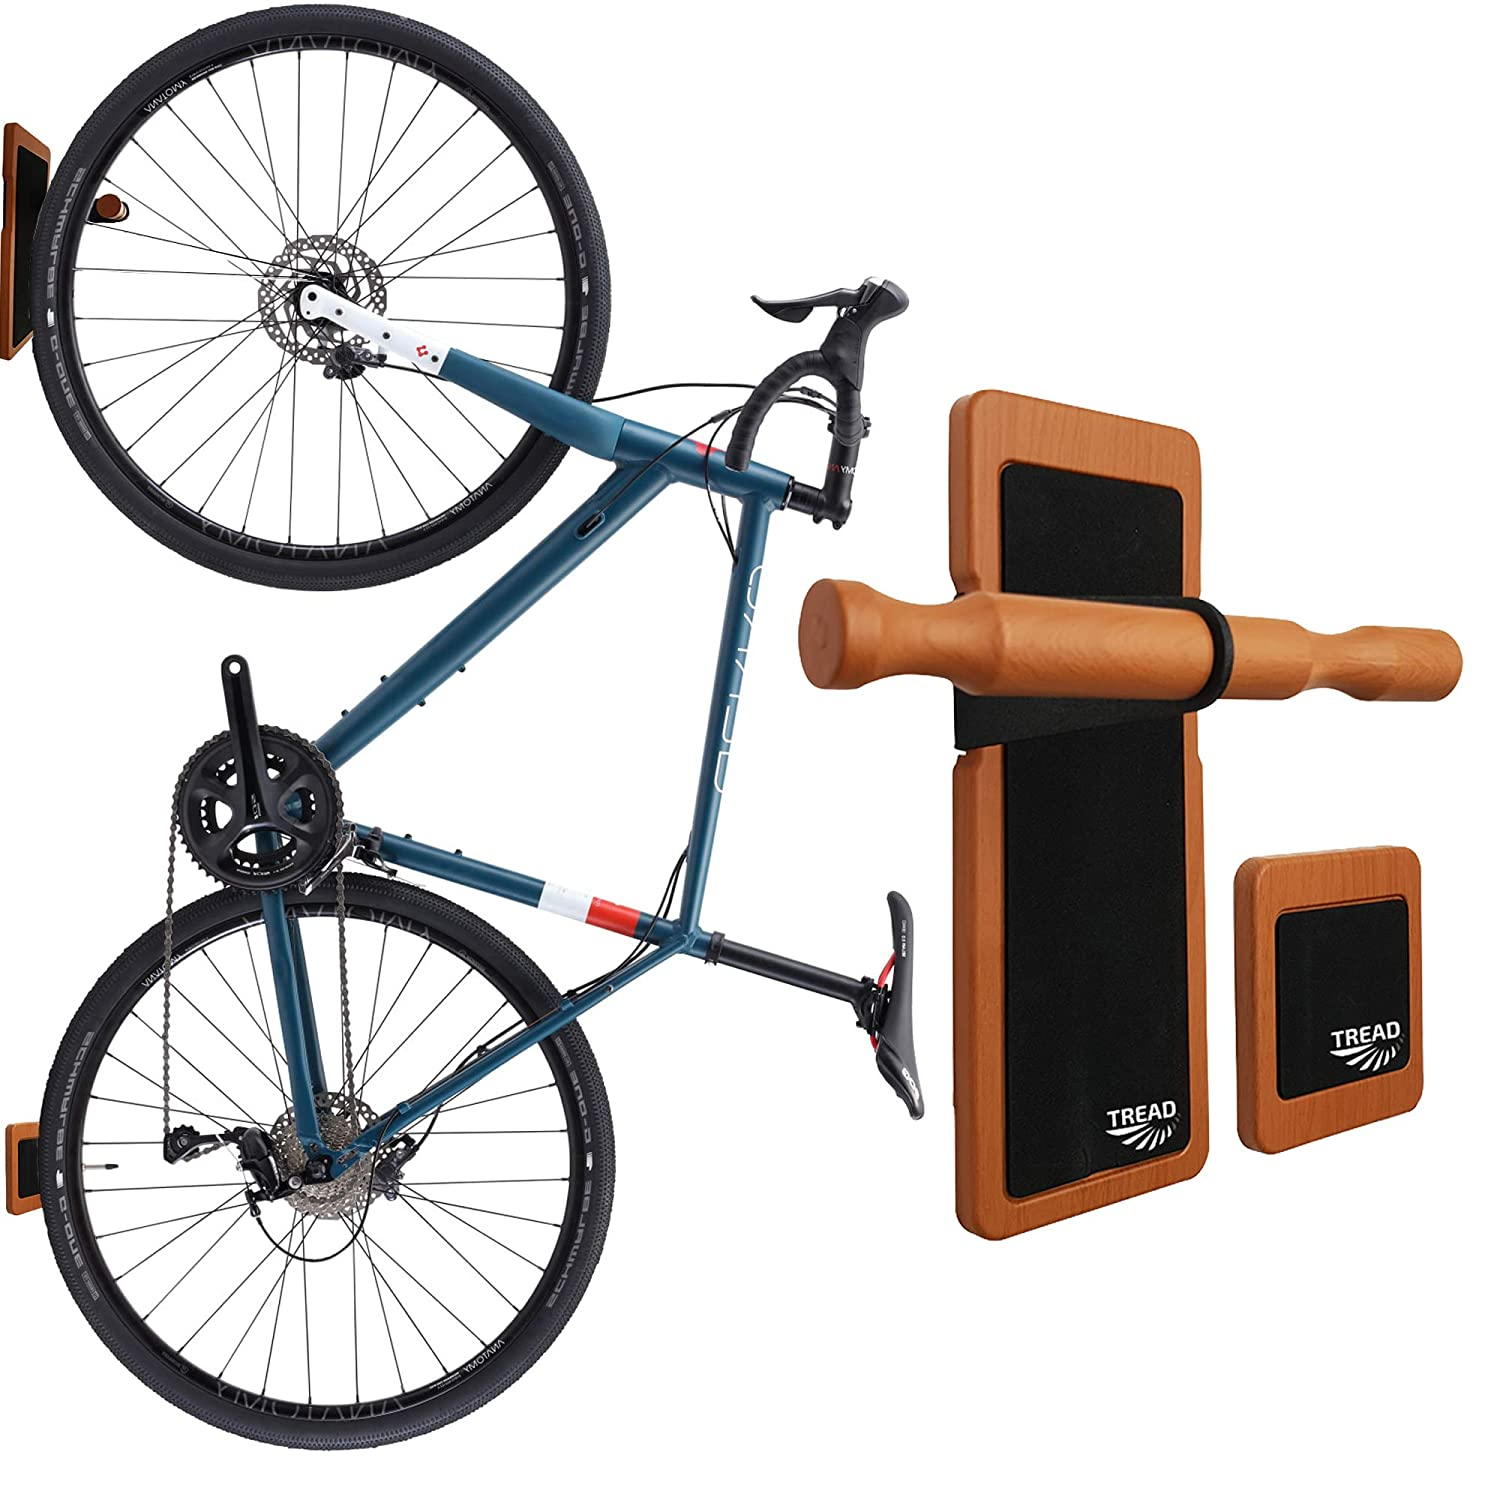 Tread Co Bike Wall Mount Multi Functional Vertical Bike Hanger Save Space Mount Your Bicycle On Your Walls In Your Shed And Garage